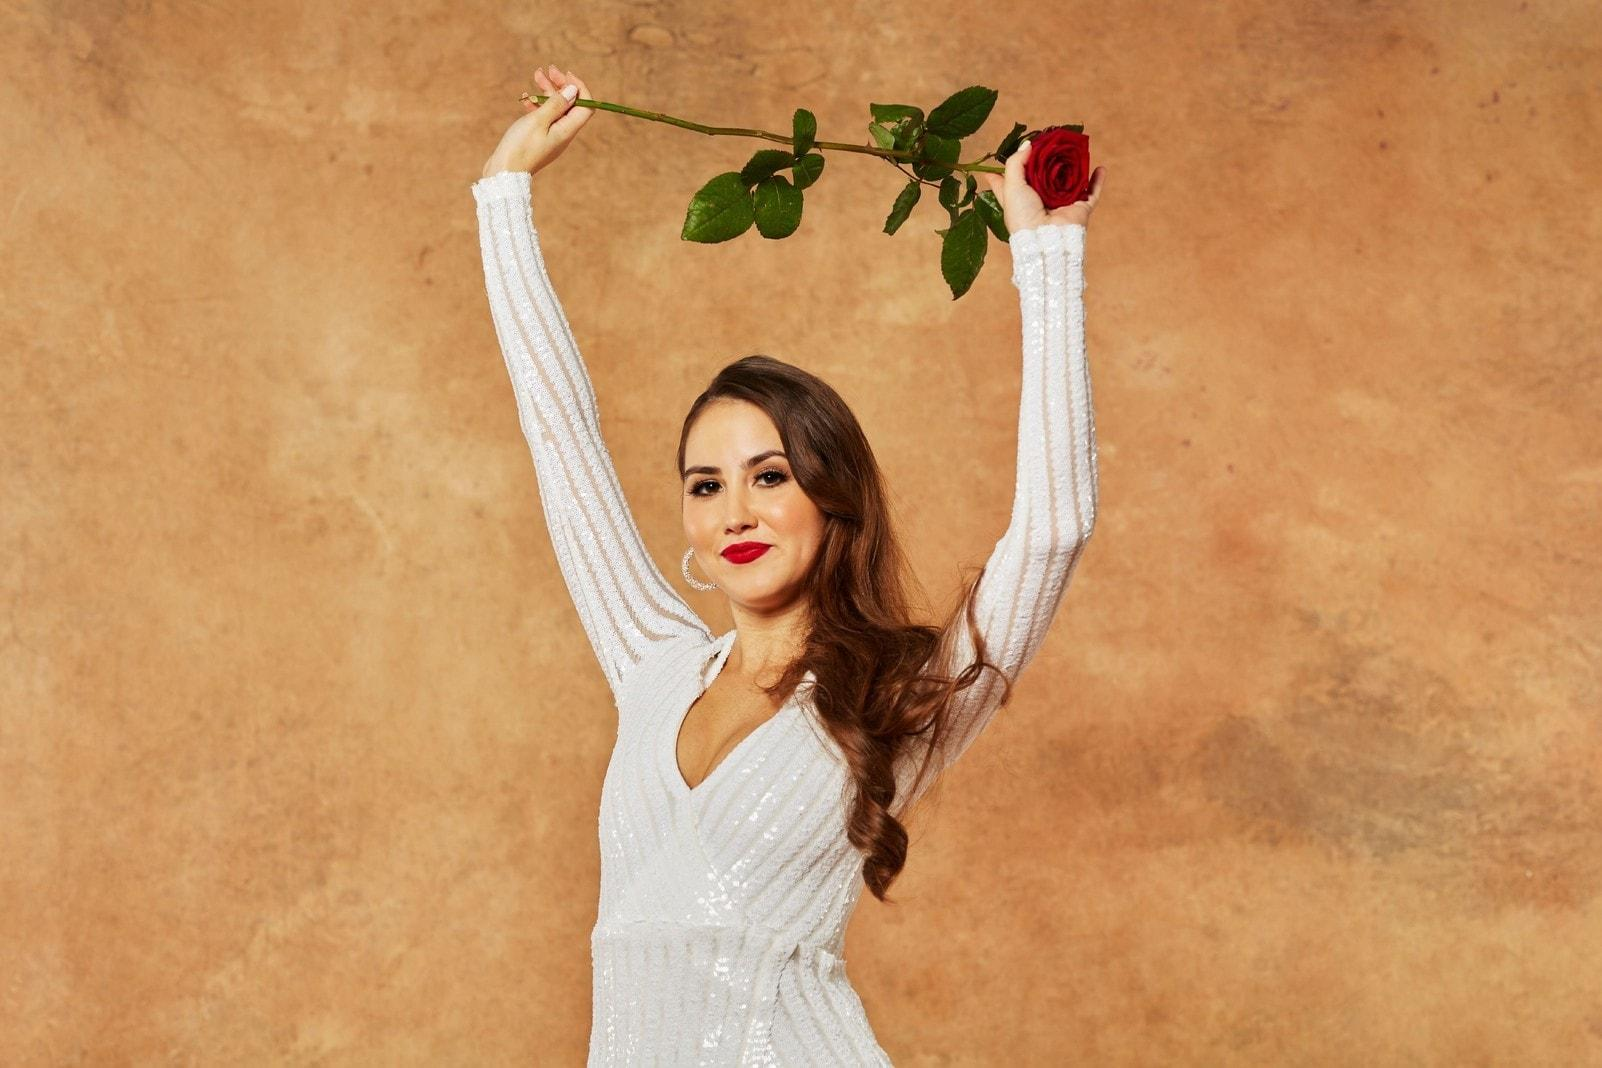 Der Bachelor Maria Rose